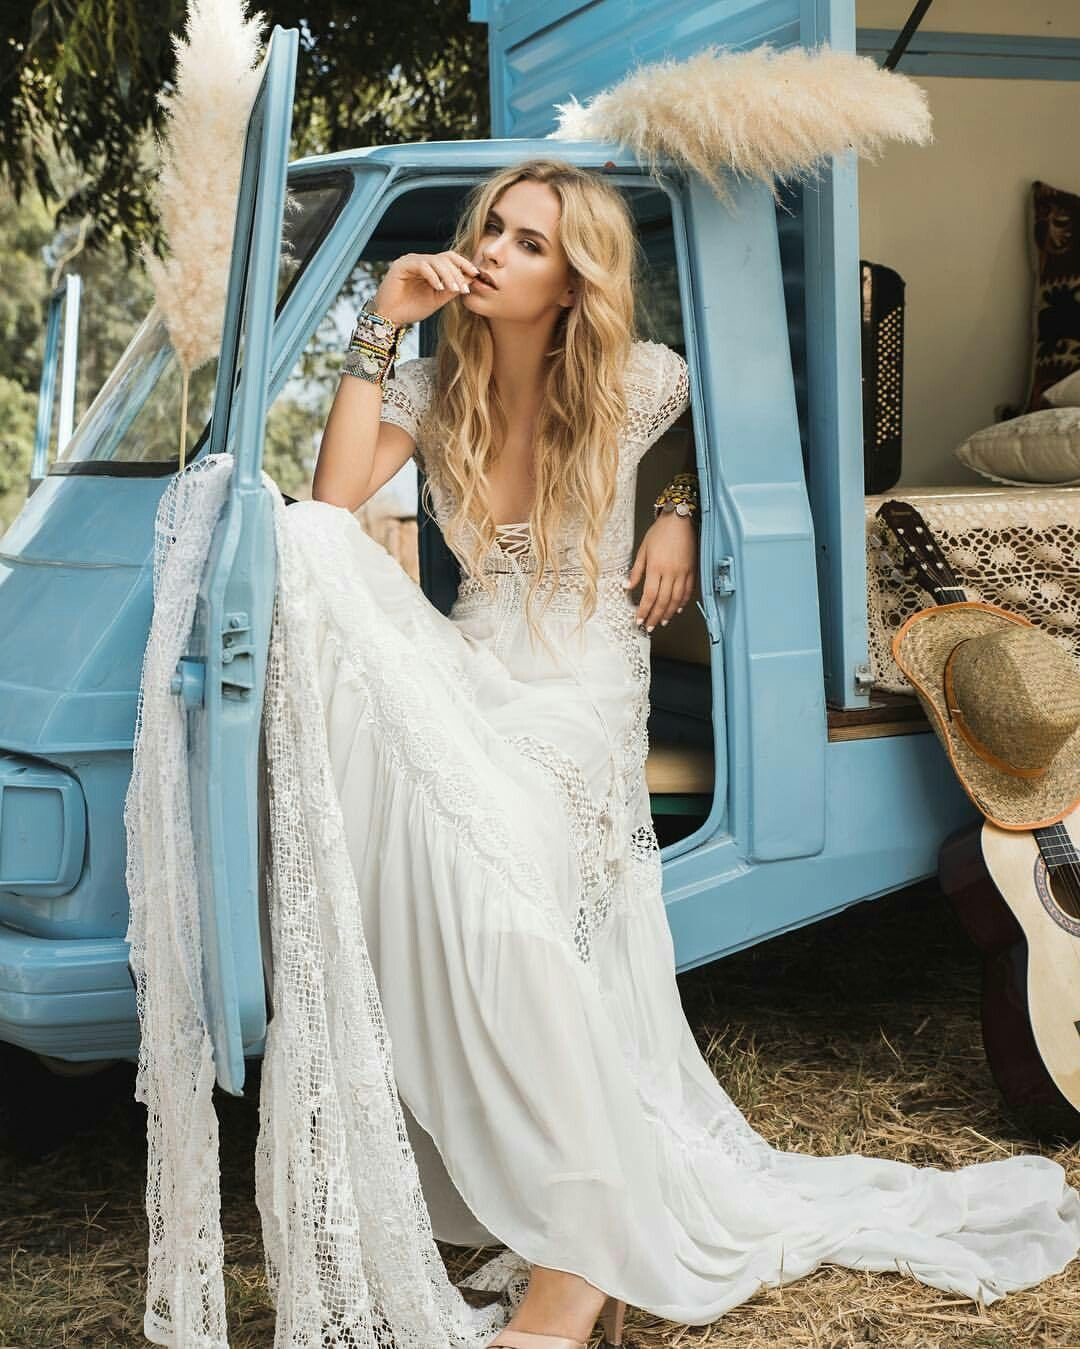 Bohemian wedding dress by inbal taviv | boho | Pinterest | Bohemian ...